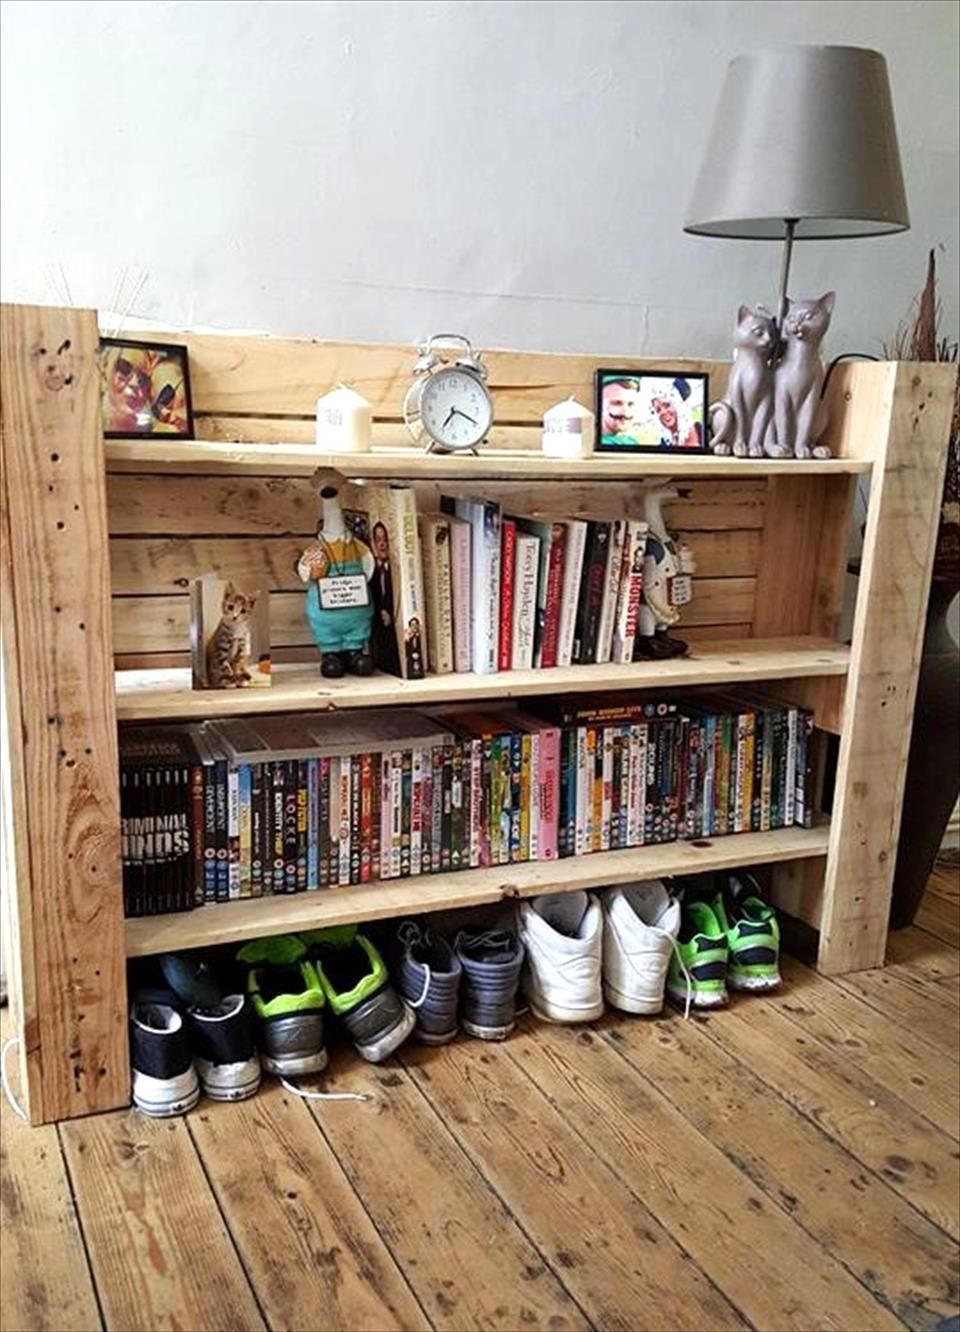 Diy pallet sofa with table 99 pallets - Handmade Furniture Pallet Shelf Diy Pallet Entryway Side Table 99 Pallets